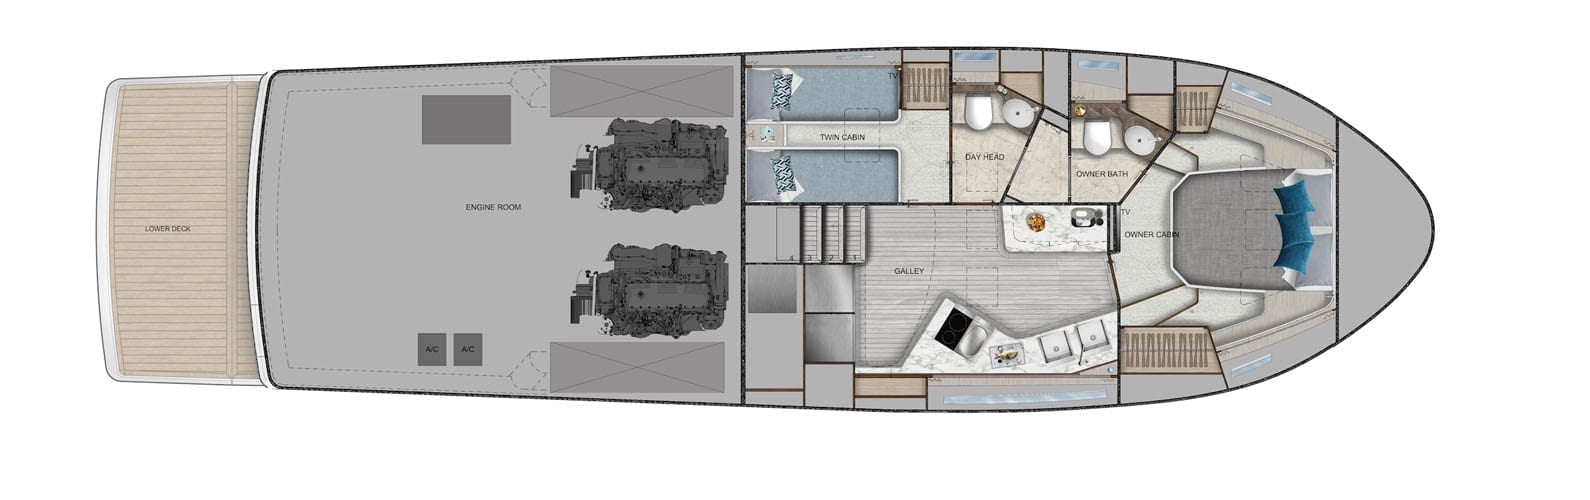 EXUMA_HTC_floorplan1-3